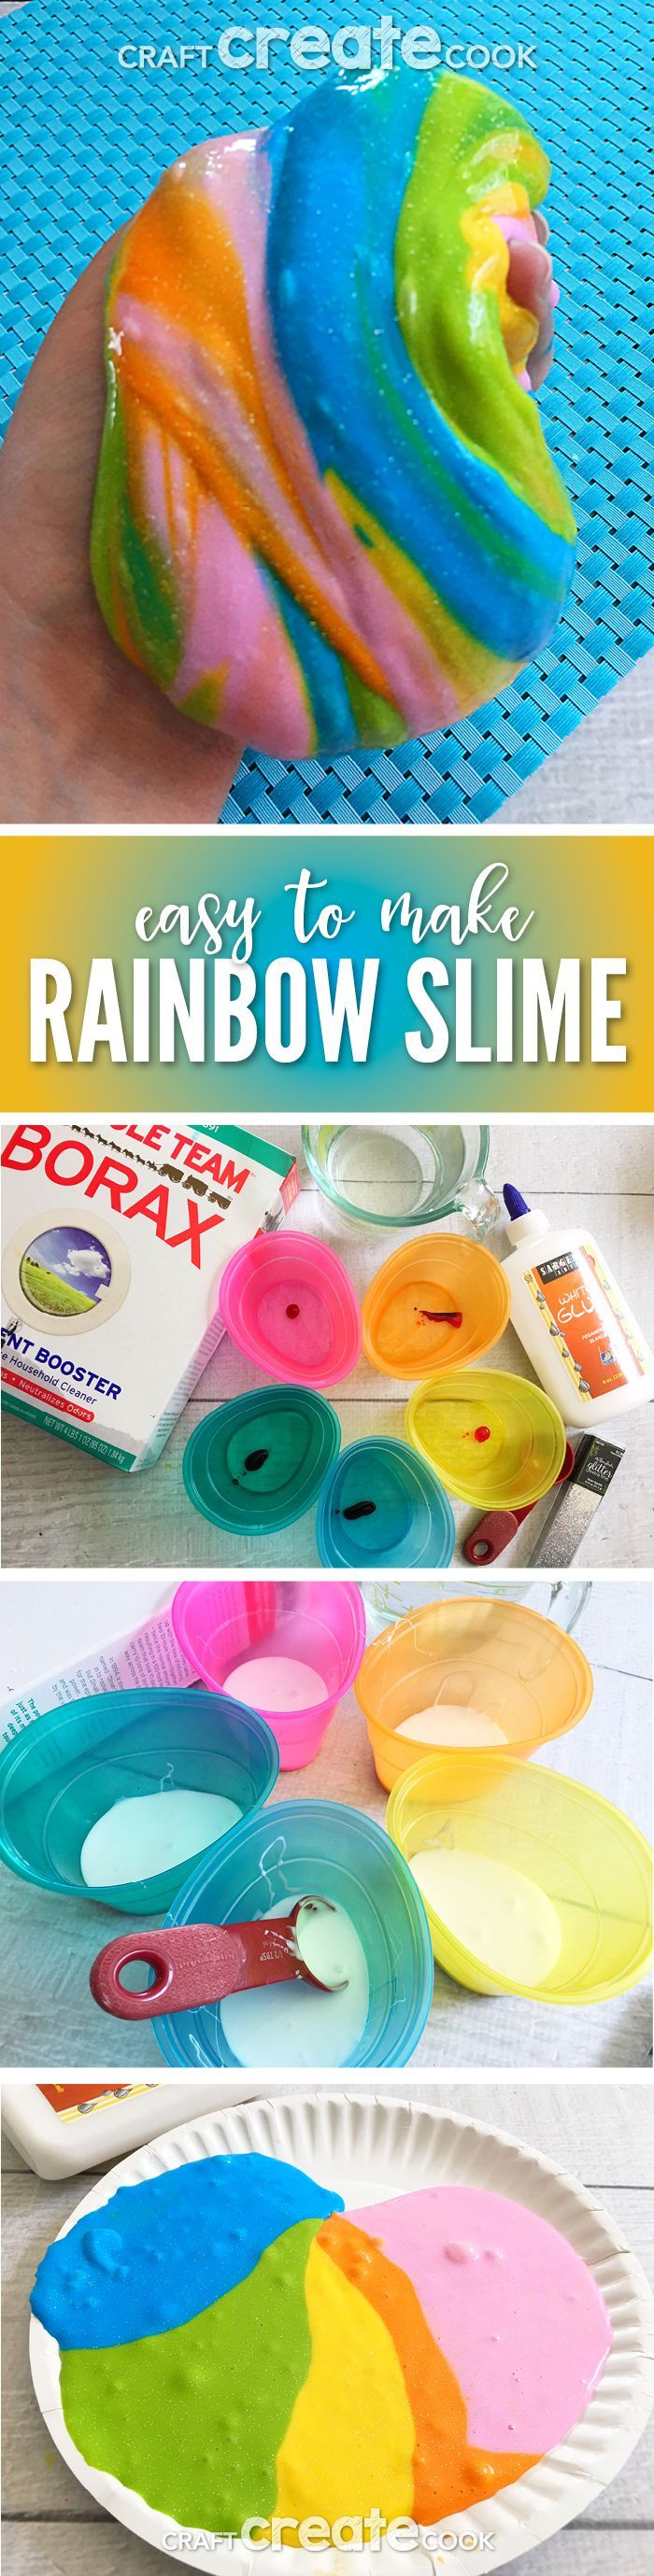 Our Glittered Rainbow Slime is easy to make and fun for the whole family to